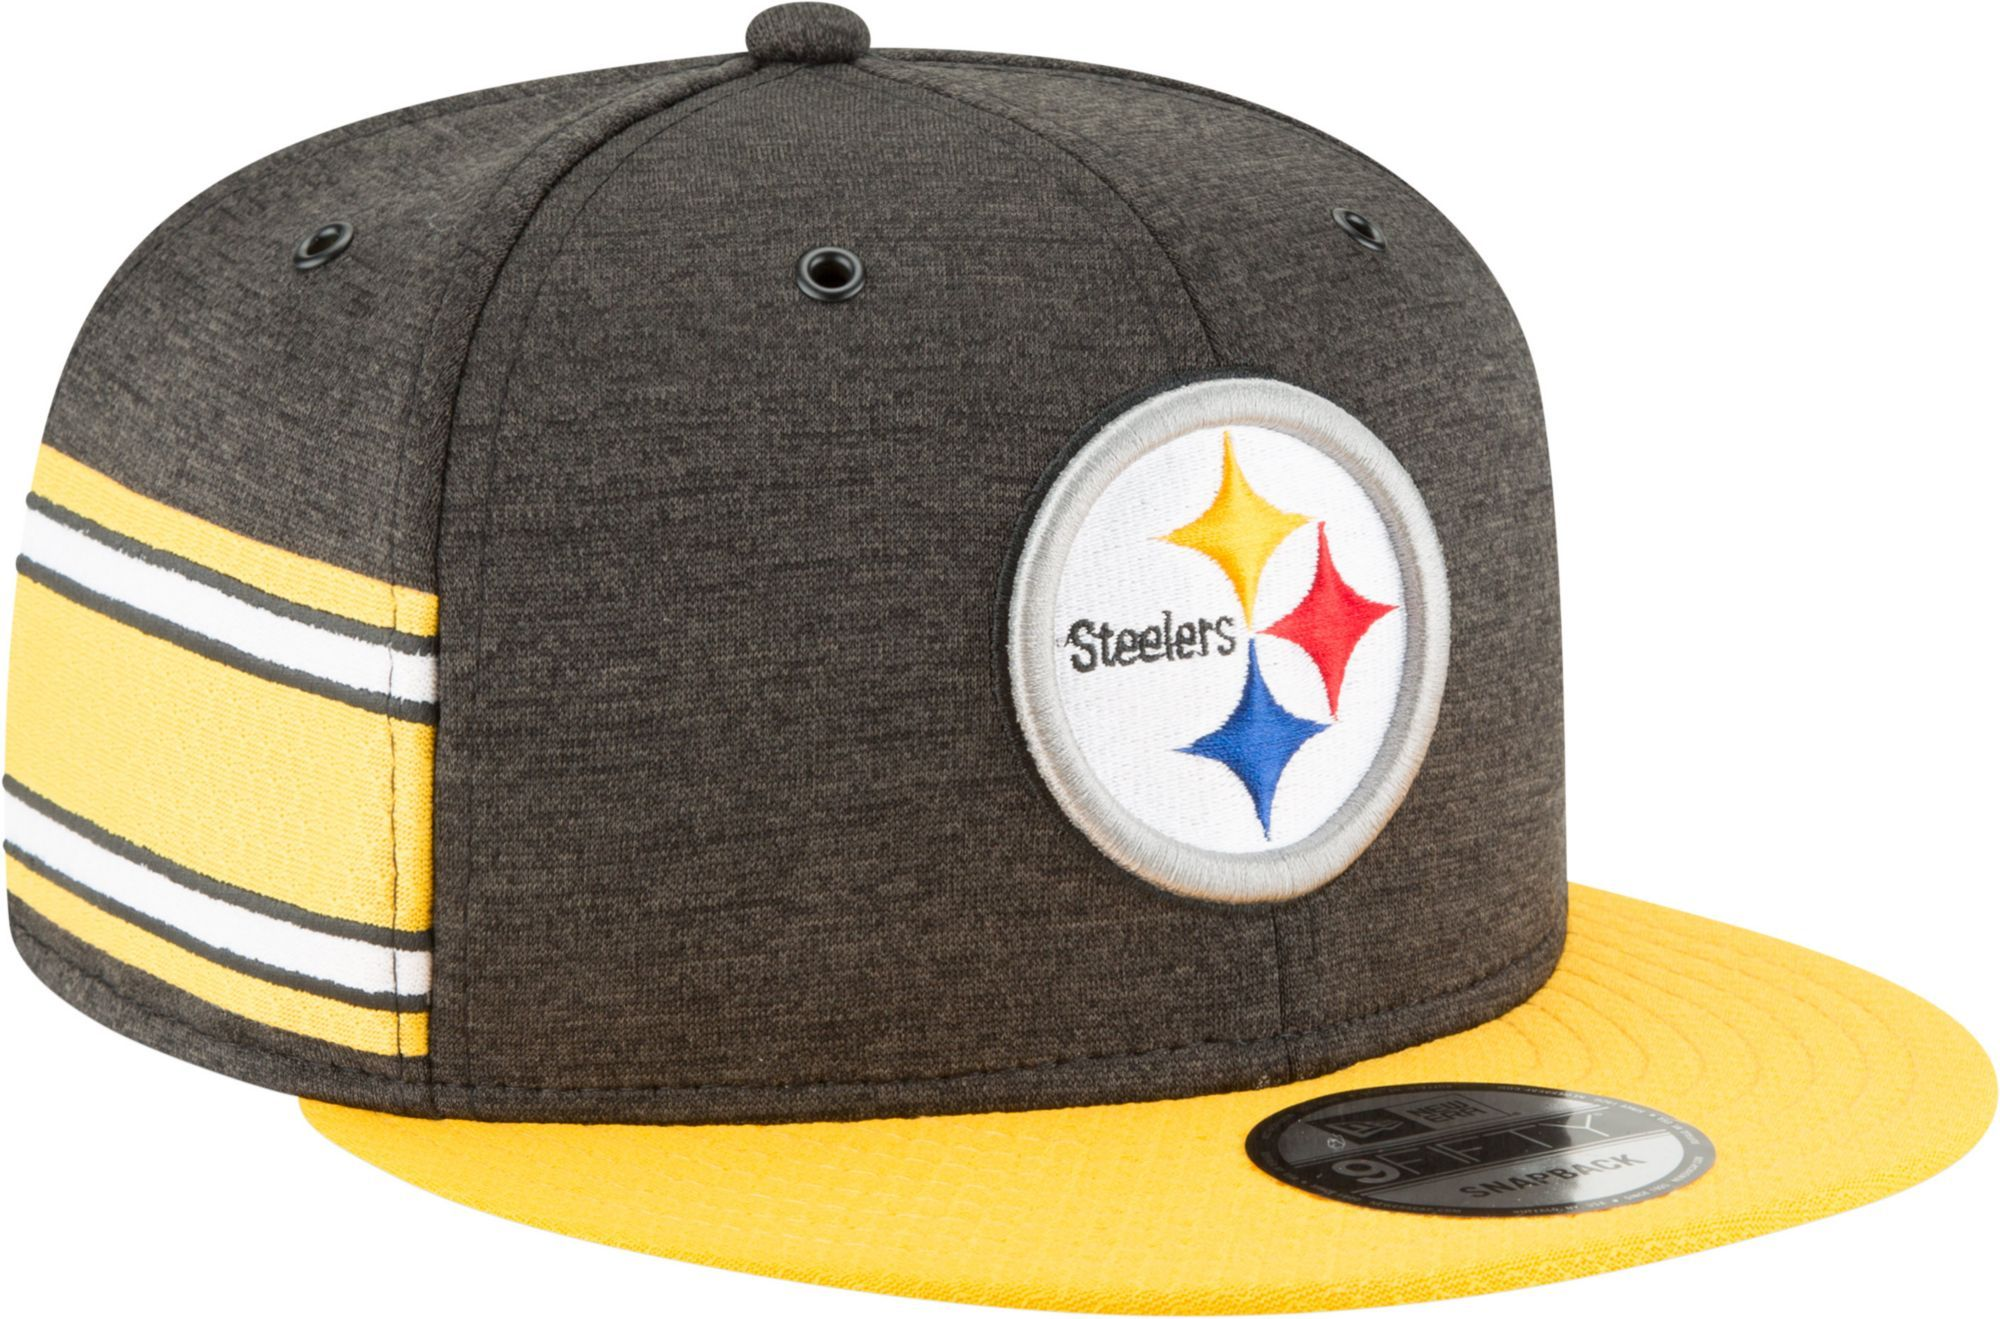 26a834c7 New Era Men's Pittsburgh Sideline Home 9Fifty Black Adjustable Hat ...